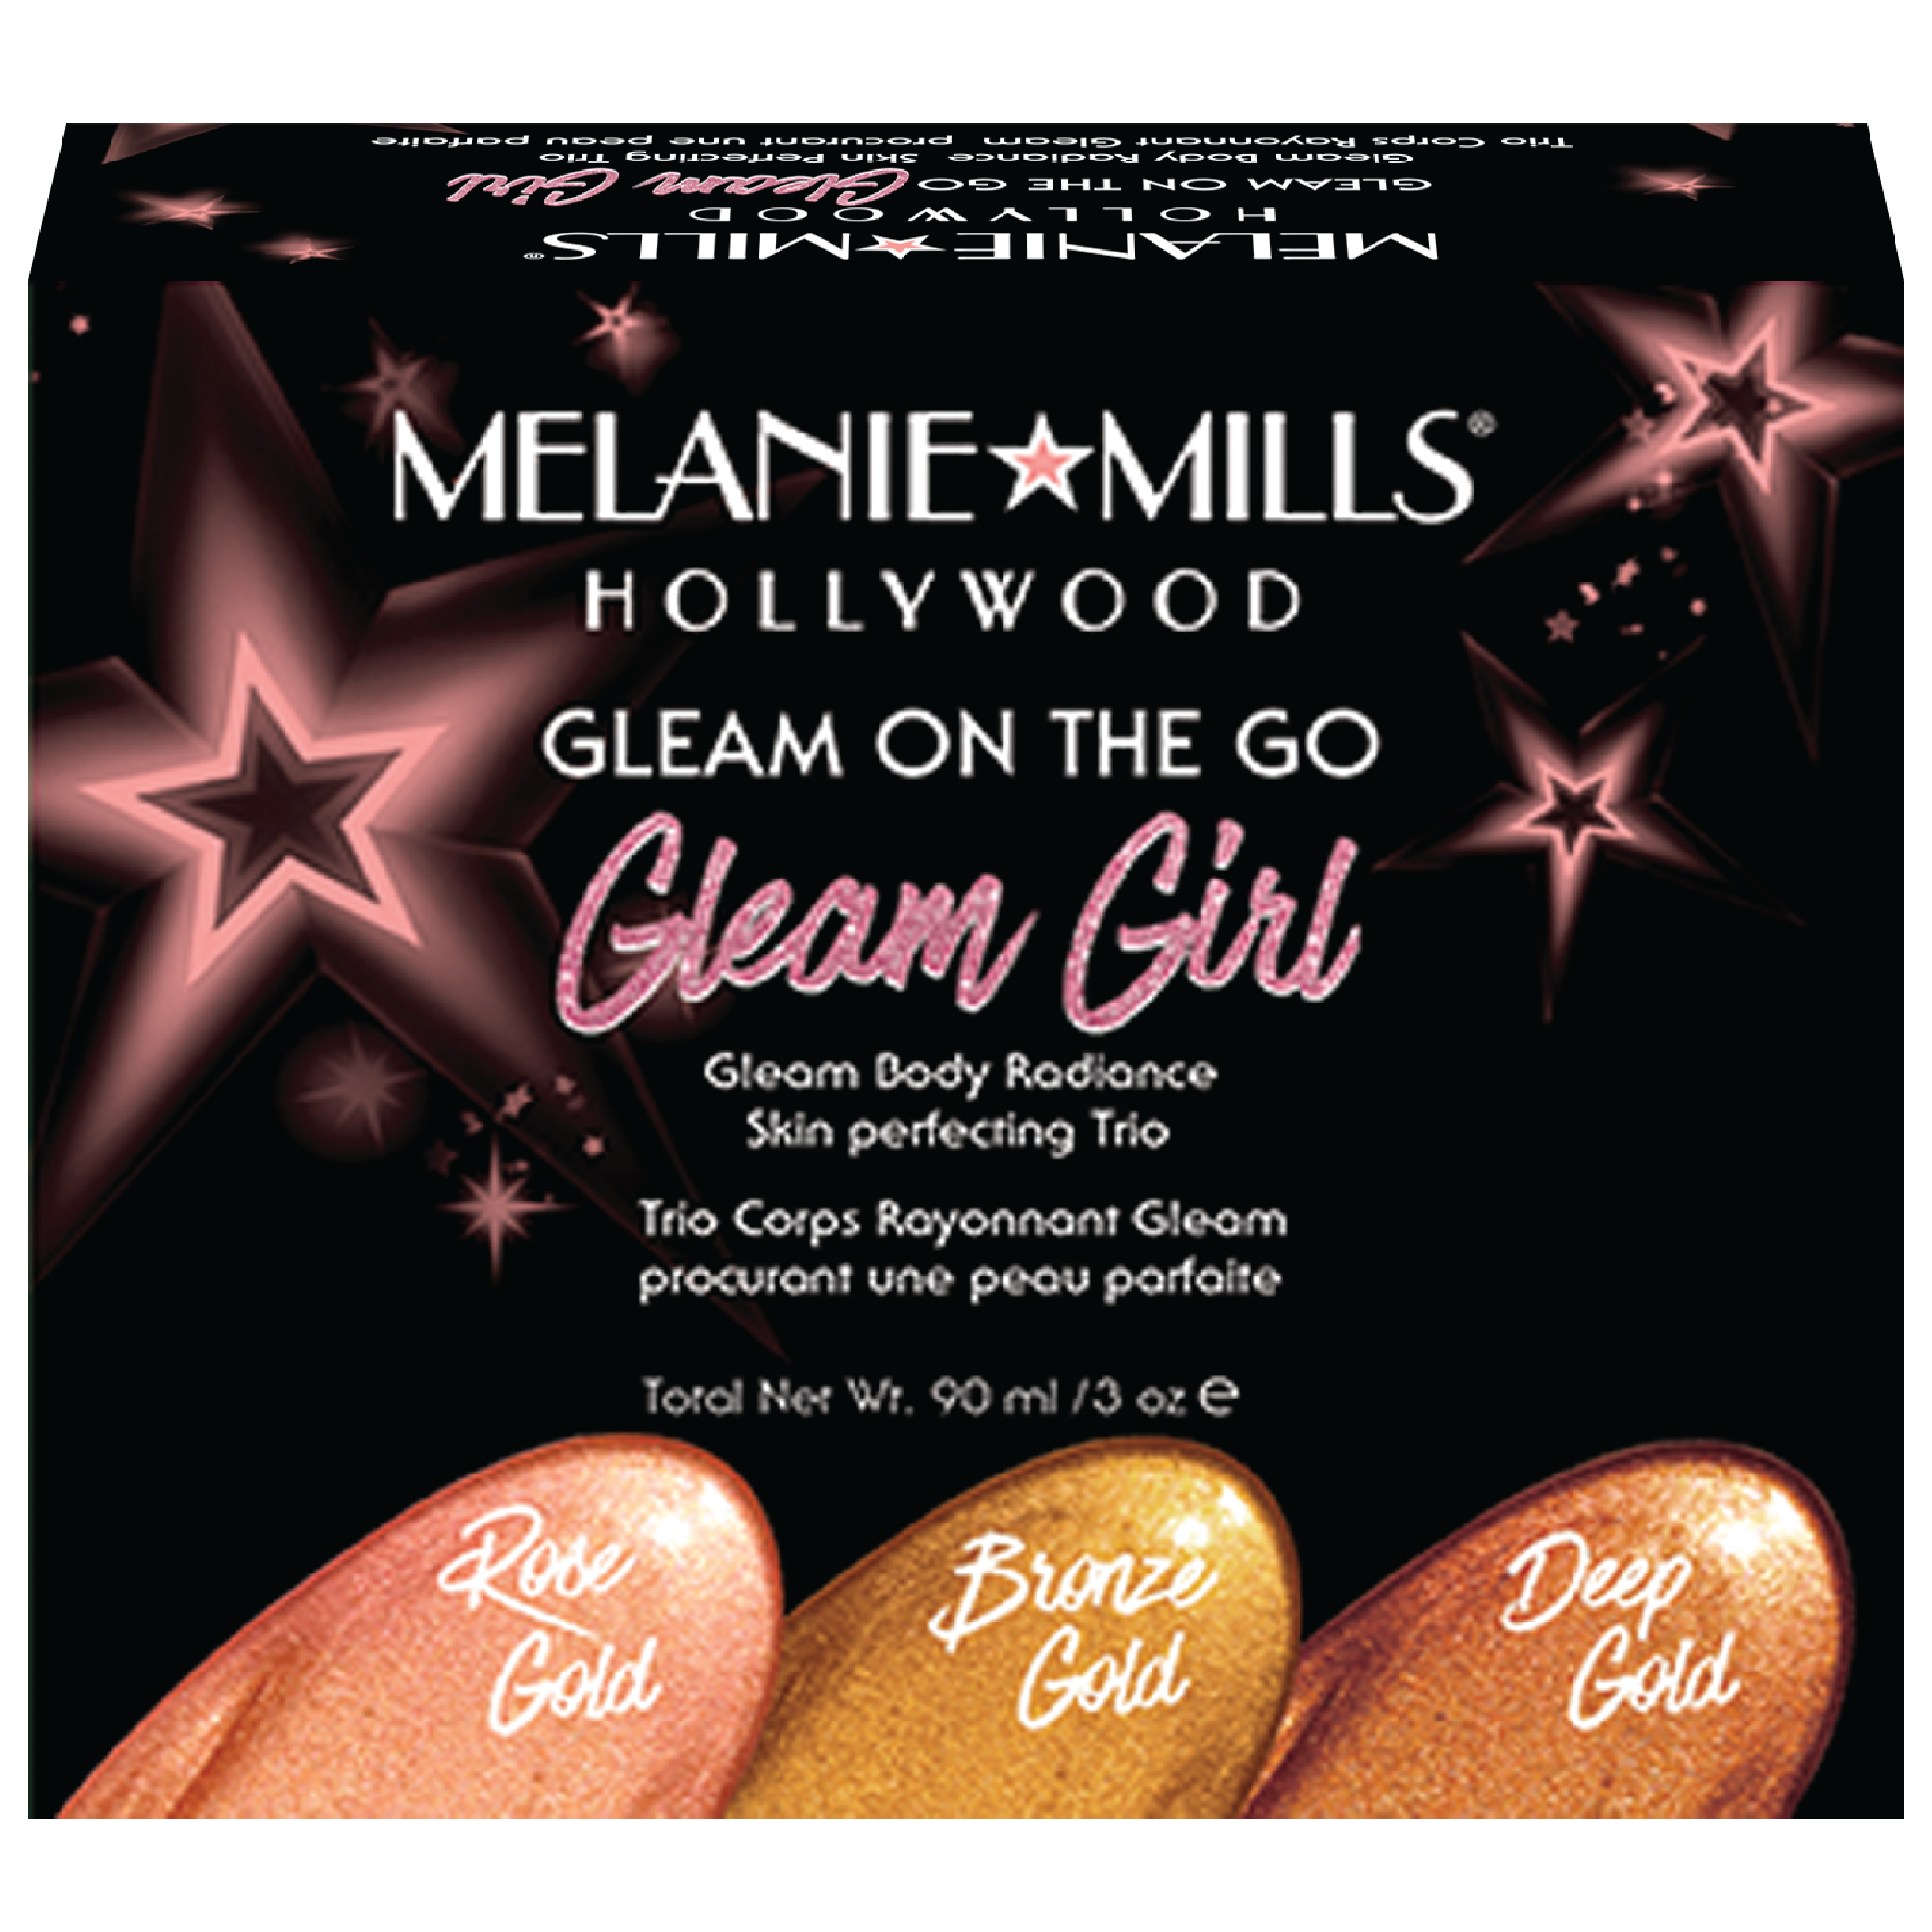 Melanie Mills Hollywood GLEAM GIRL Gleam on the Go Body Radiance Kit